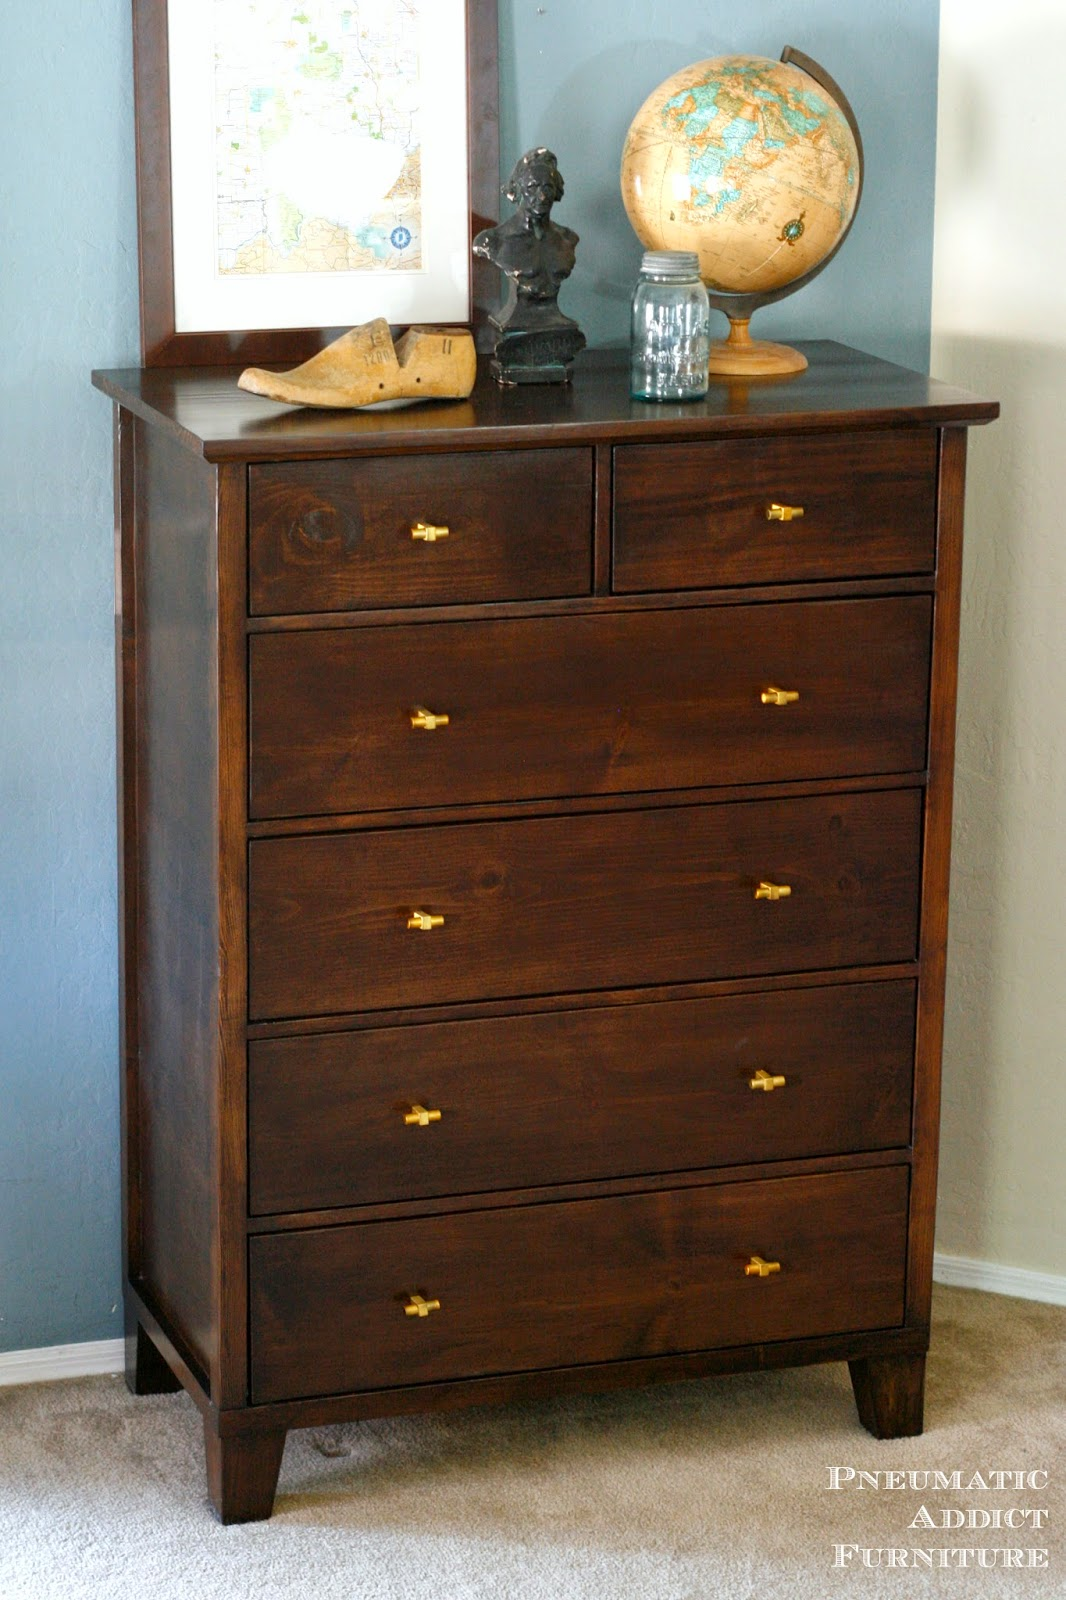 Learn to build your own PB knock-off, tall dresser.